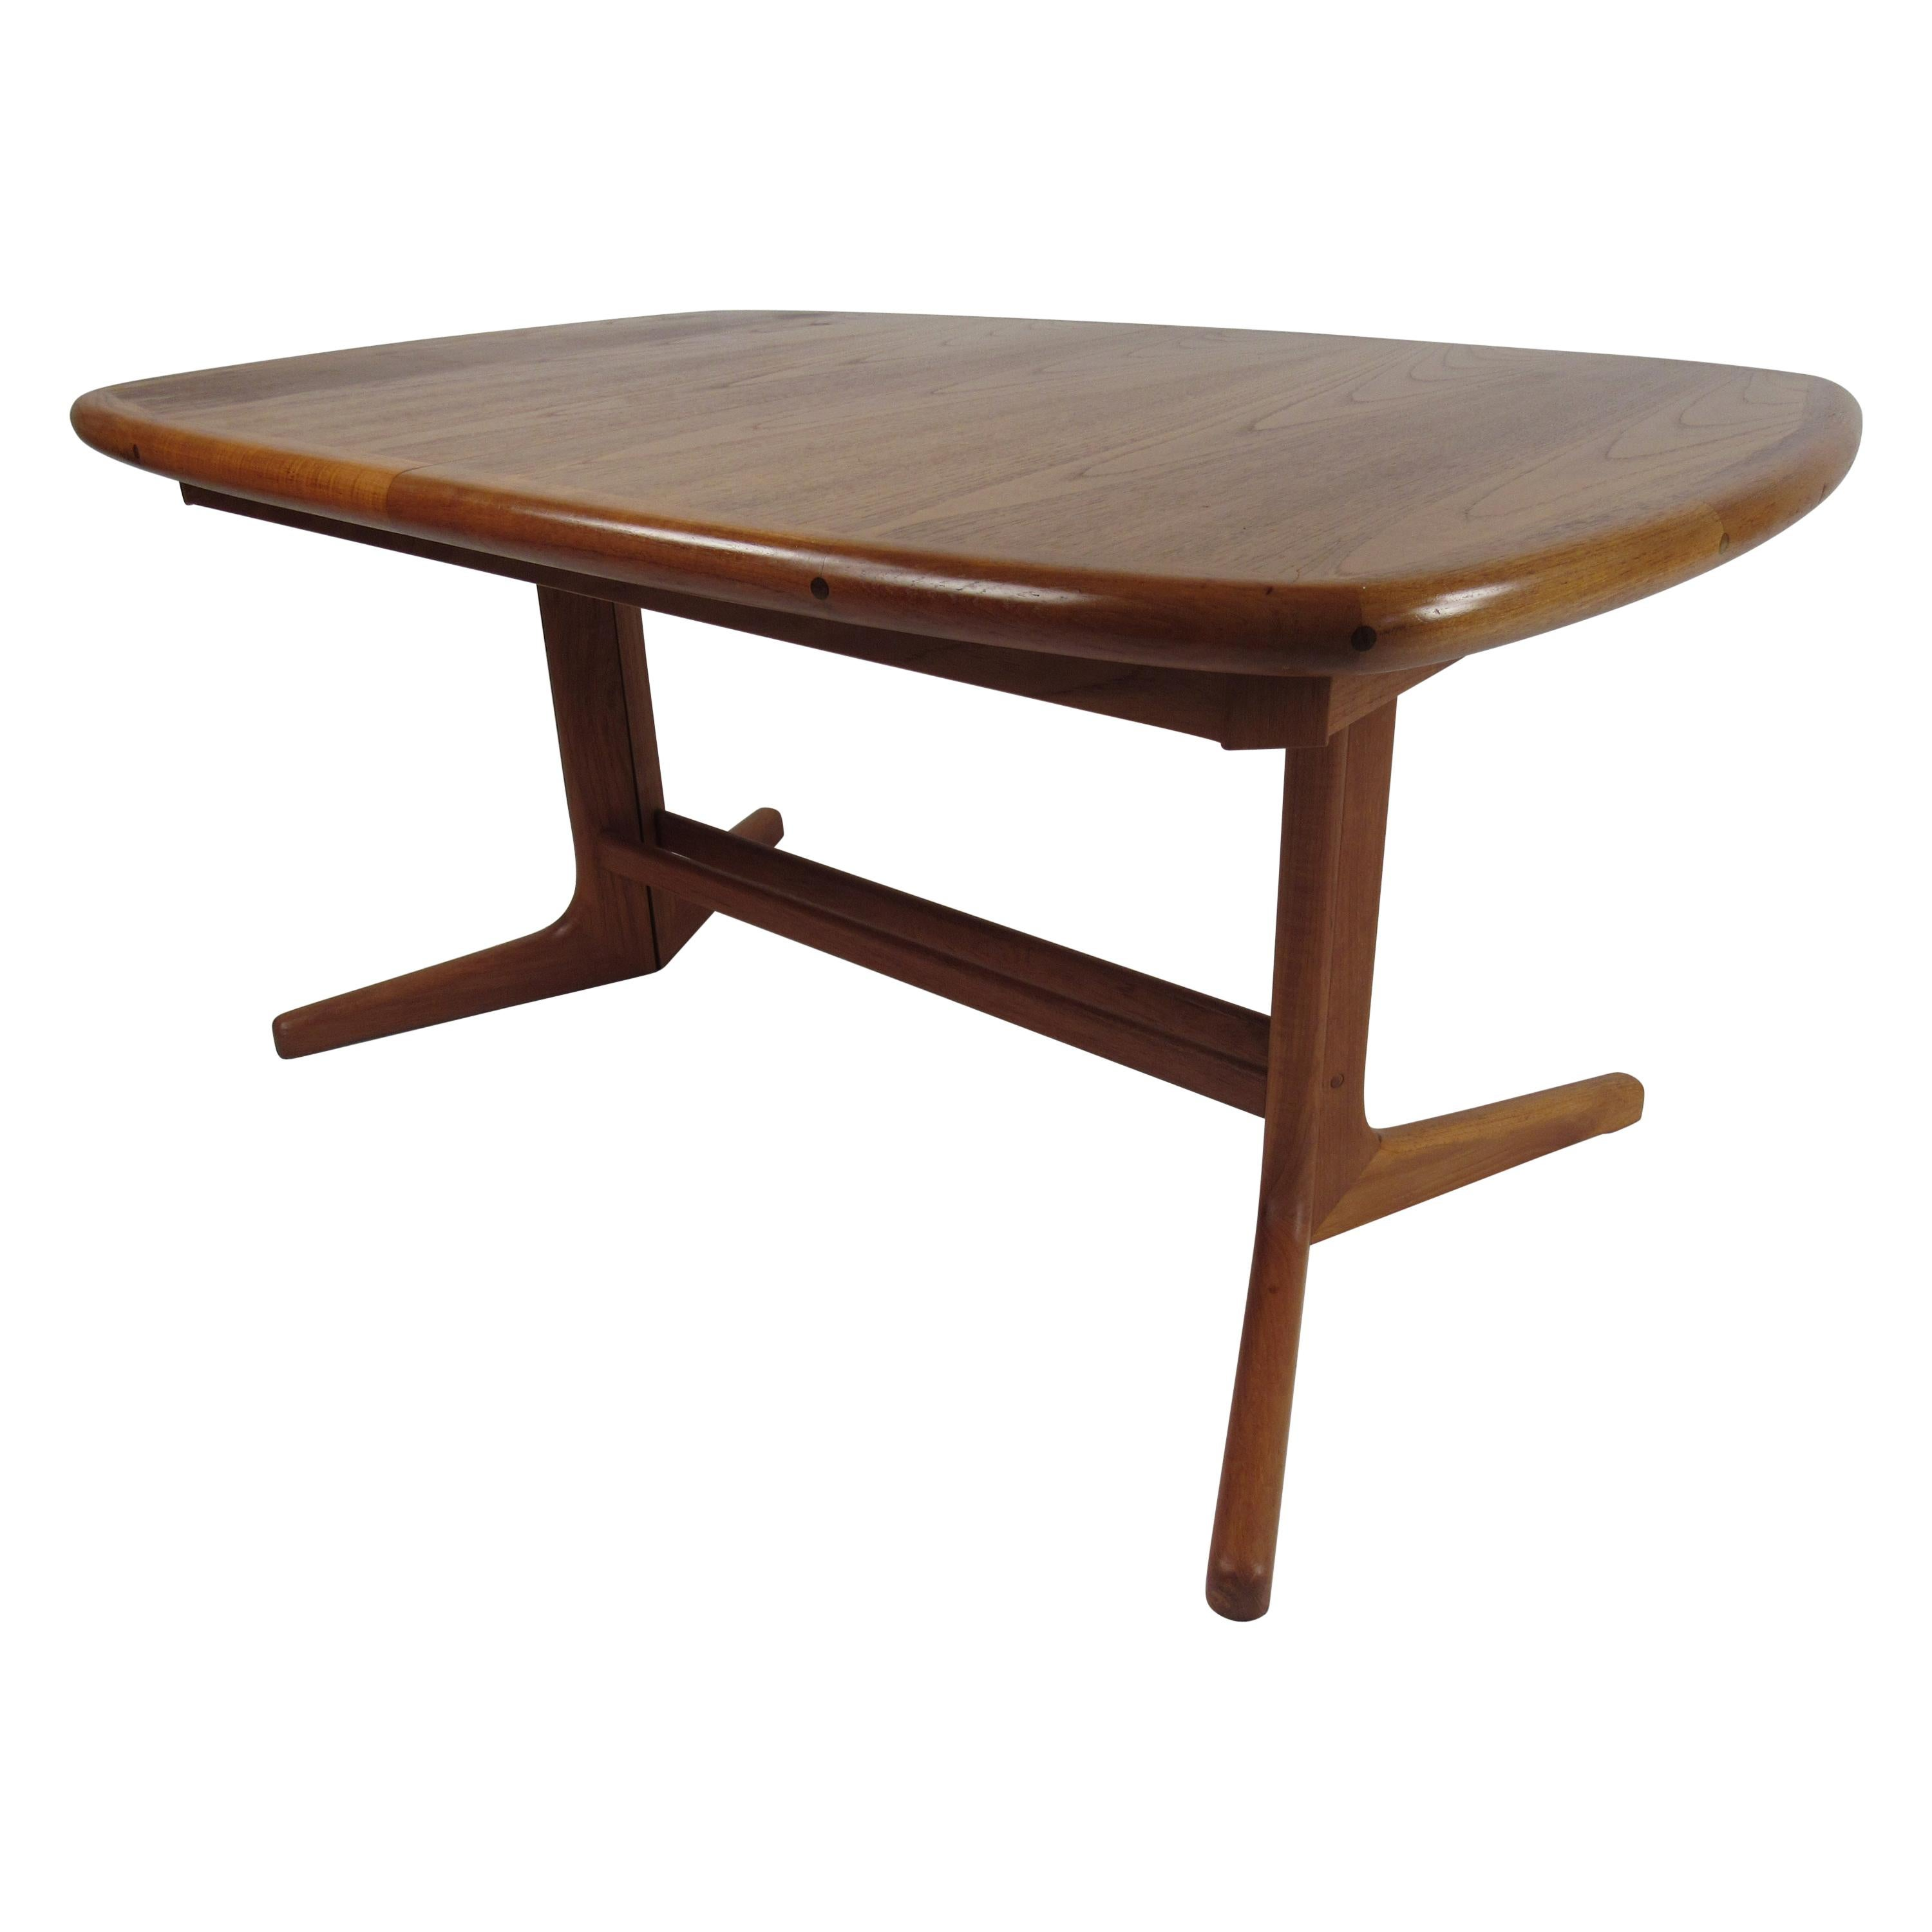 Danish Modern Butterfly Leaf Dining Table with a Pedestal Base